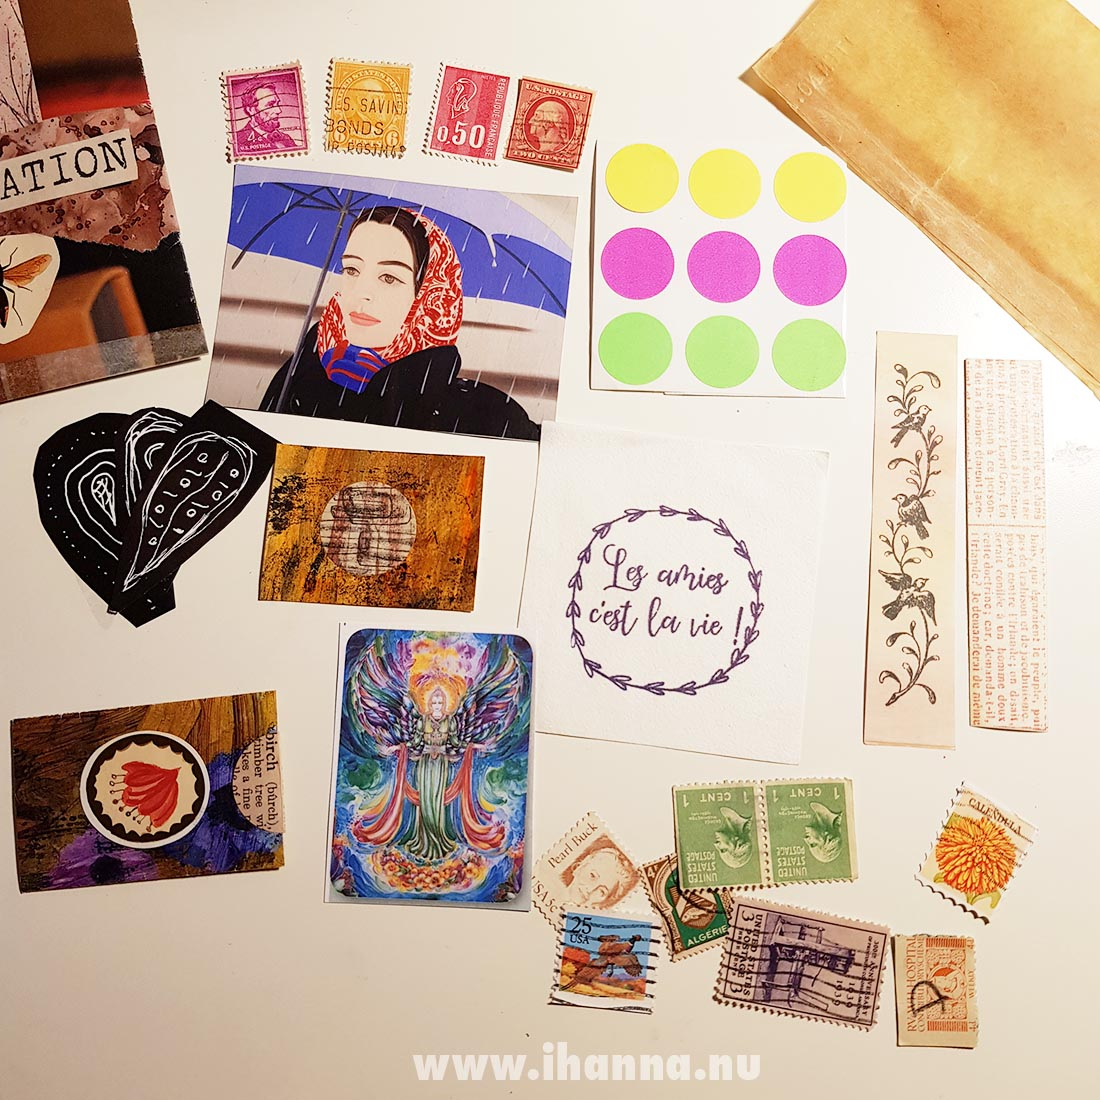 Happy mail with lots of collage fodder and stamps from Franca Maria to iHanna